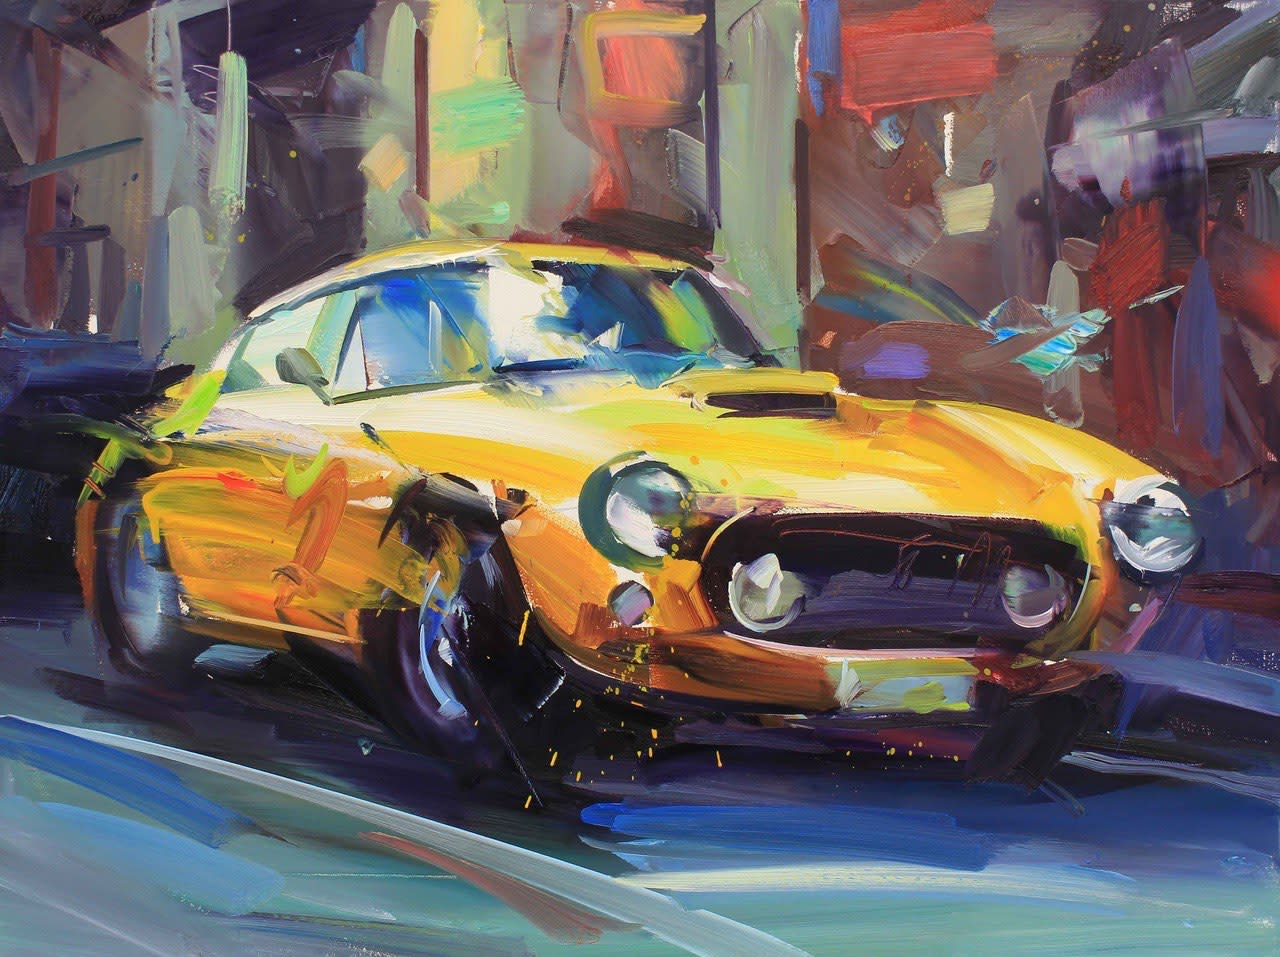 "<span class=""link fancybox-details-link""><a href=""/artists/188-paul-wright/works/2622-paul-wright-yellow-ferrari/"">View Detail Page</a></span><div class=""artist""><strong>Paul Wright</strong></div> <div class=""title""><em>Yellow Ferrari</em></div> <div class=""medium"">Print on Paper </div> <div class=""dimensions"">52 x 69 cm </div> <div class=""edition_details"">Edition of 45</div><div class=""price"">£400.00</div><div class=""copyright_line"">Copyright The Artist</div>"